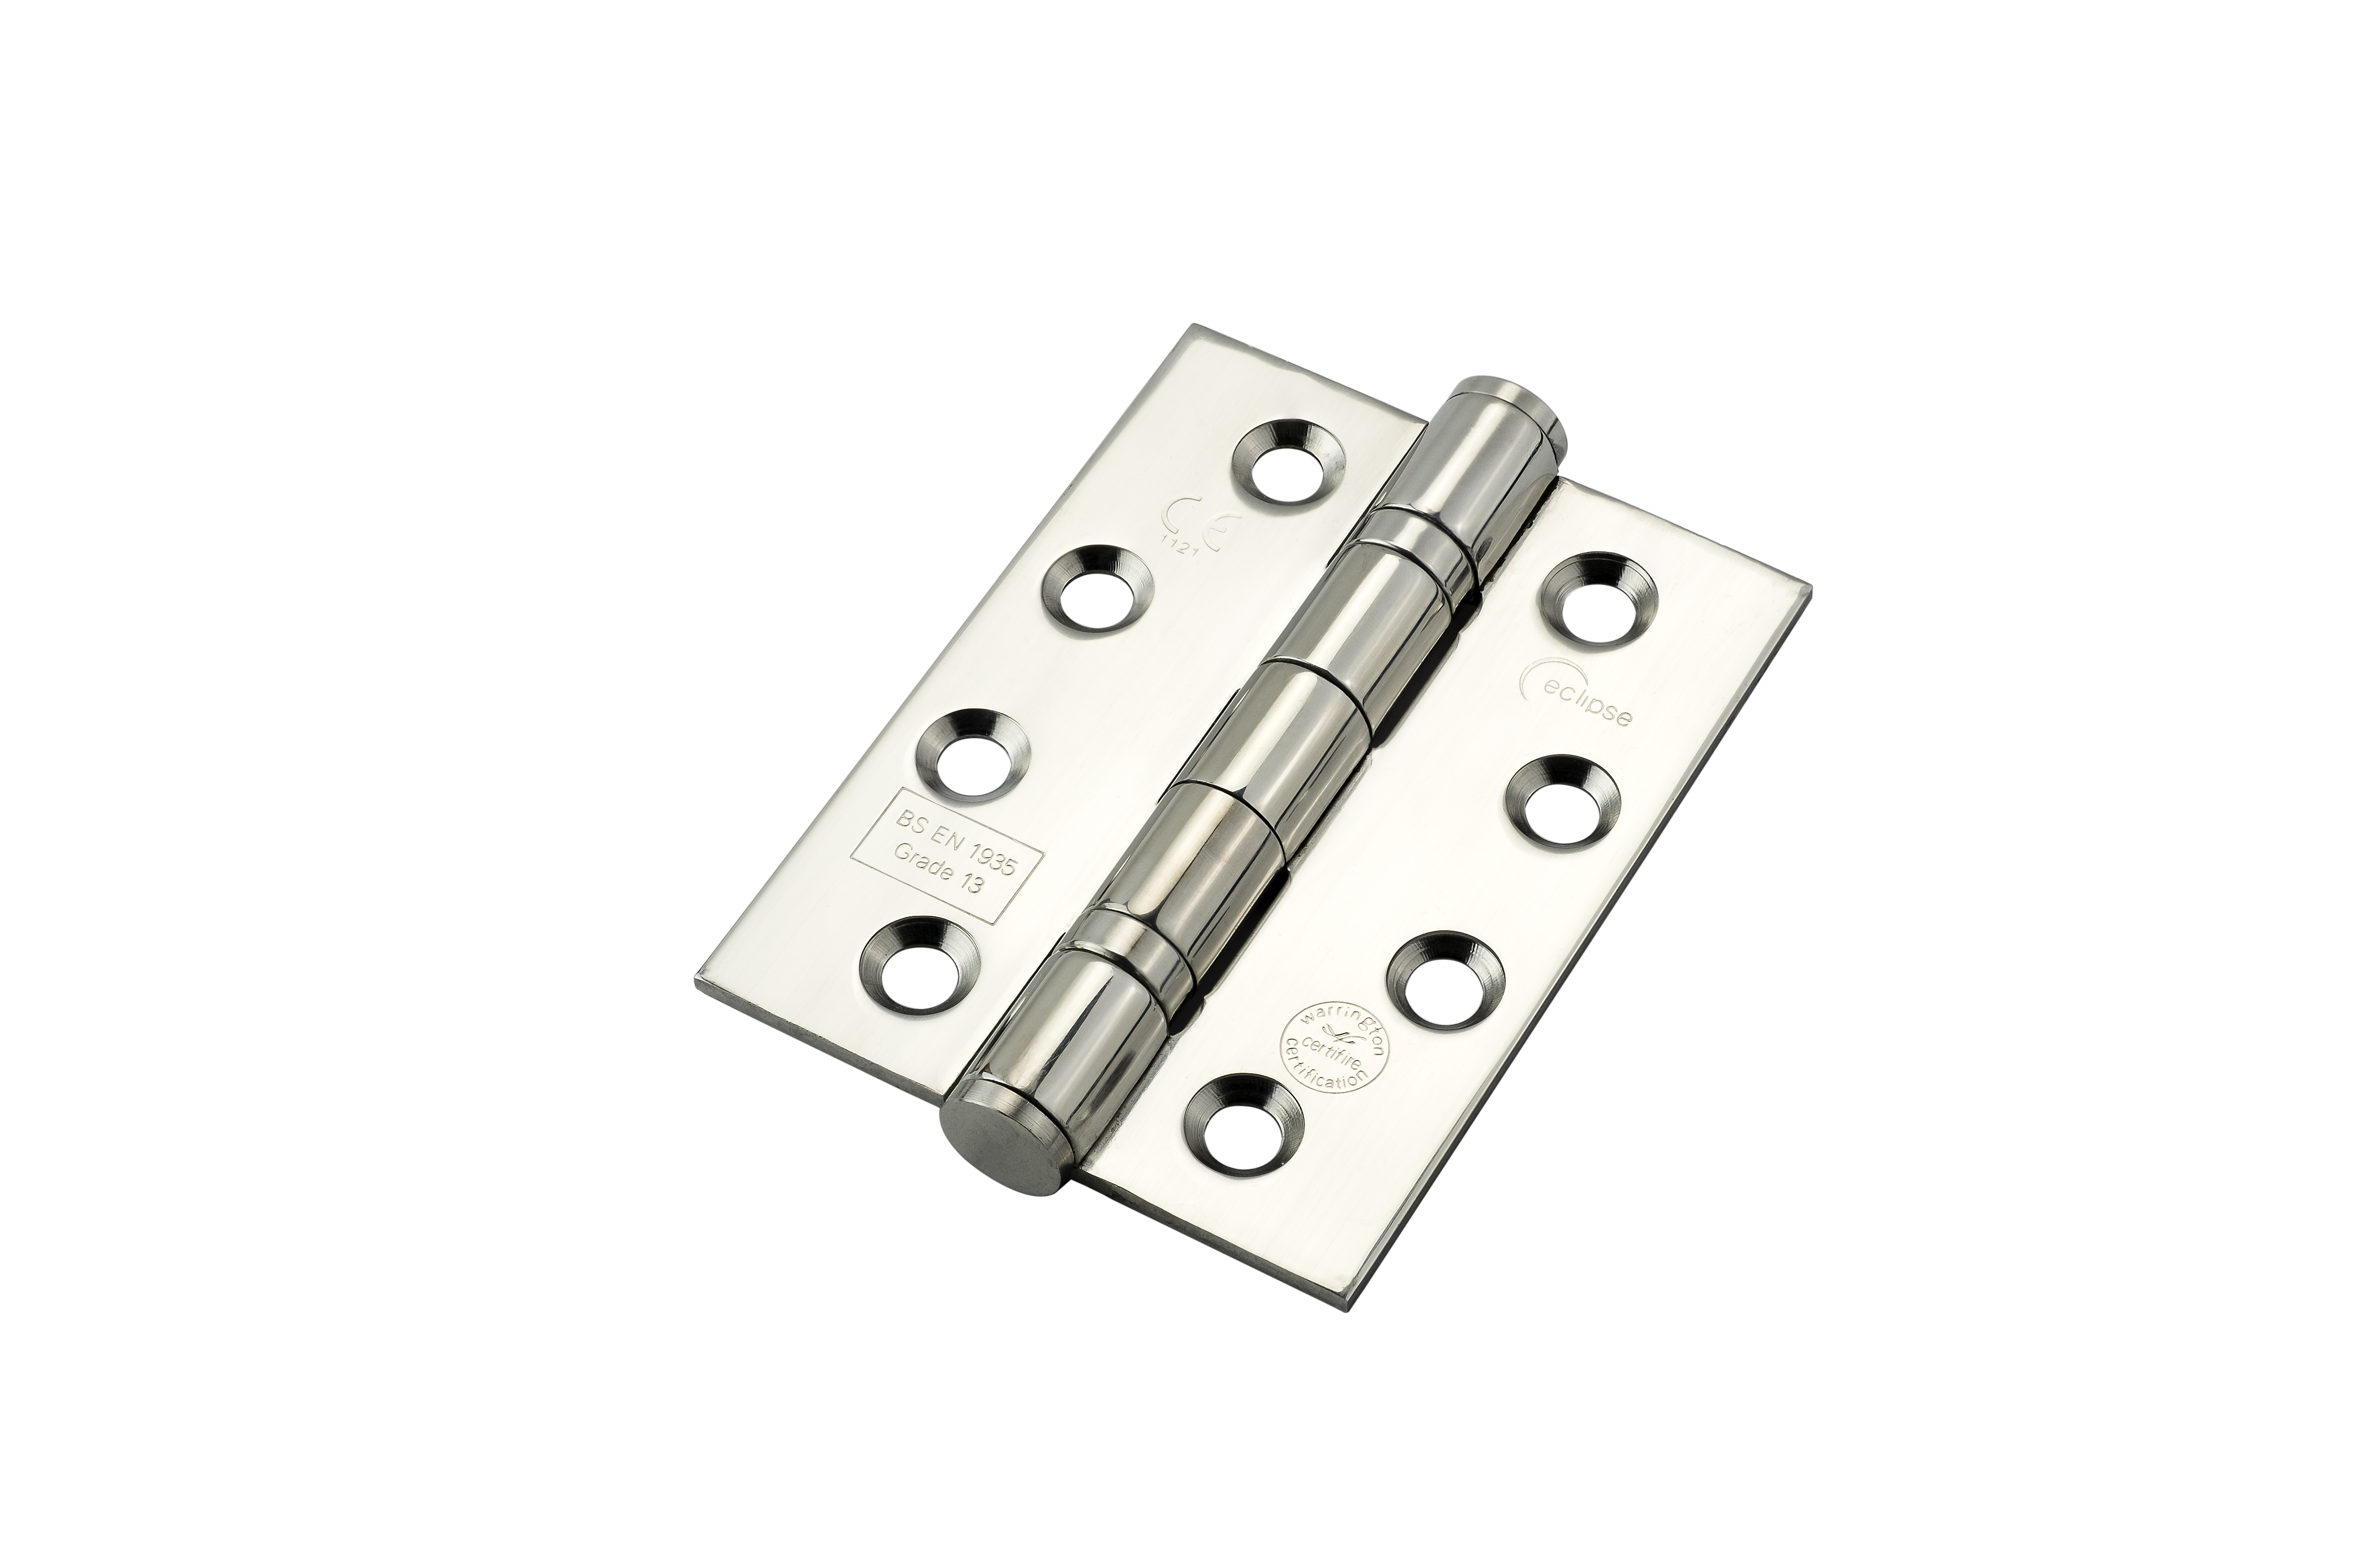 100x75x3mm PSS Ball Bearing Hinge BS EN1935 Grade 13